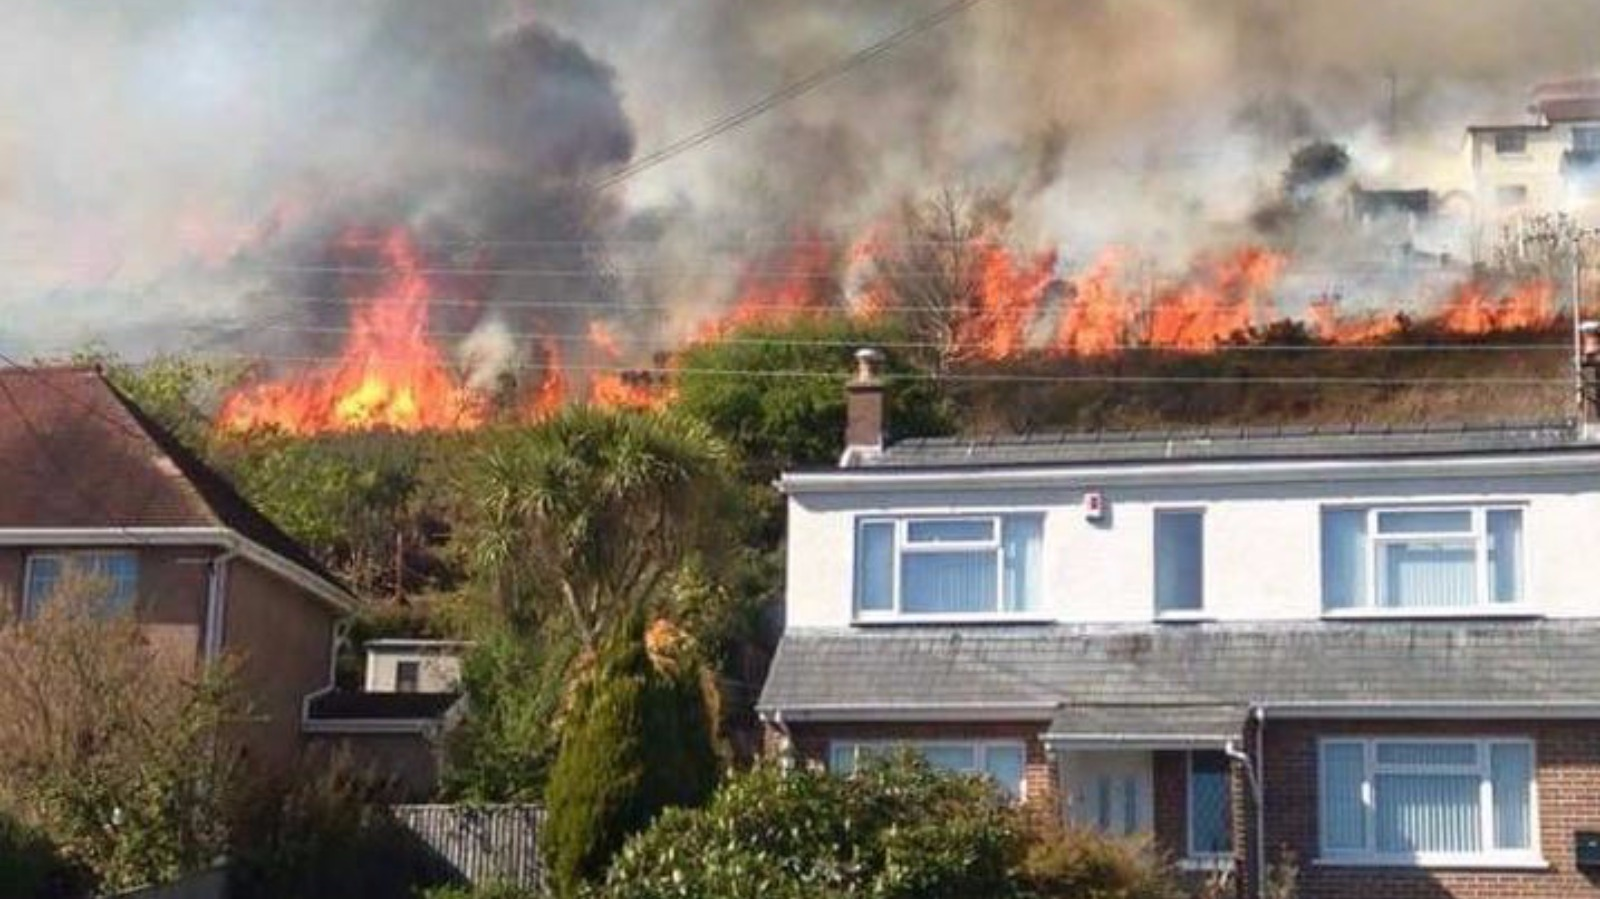 Major grass fire threatens homes in Carmarthenshire | Wales - ITV News